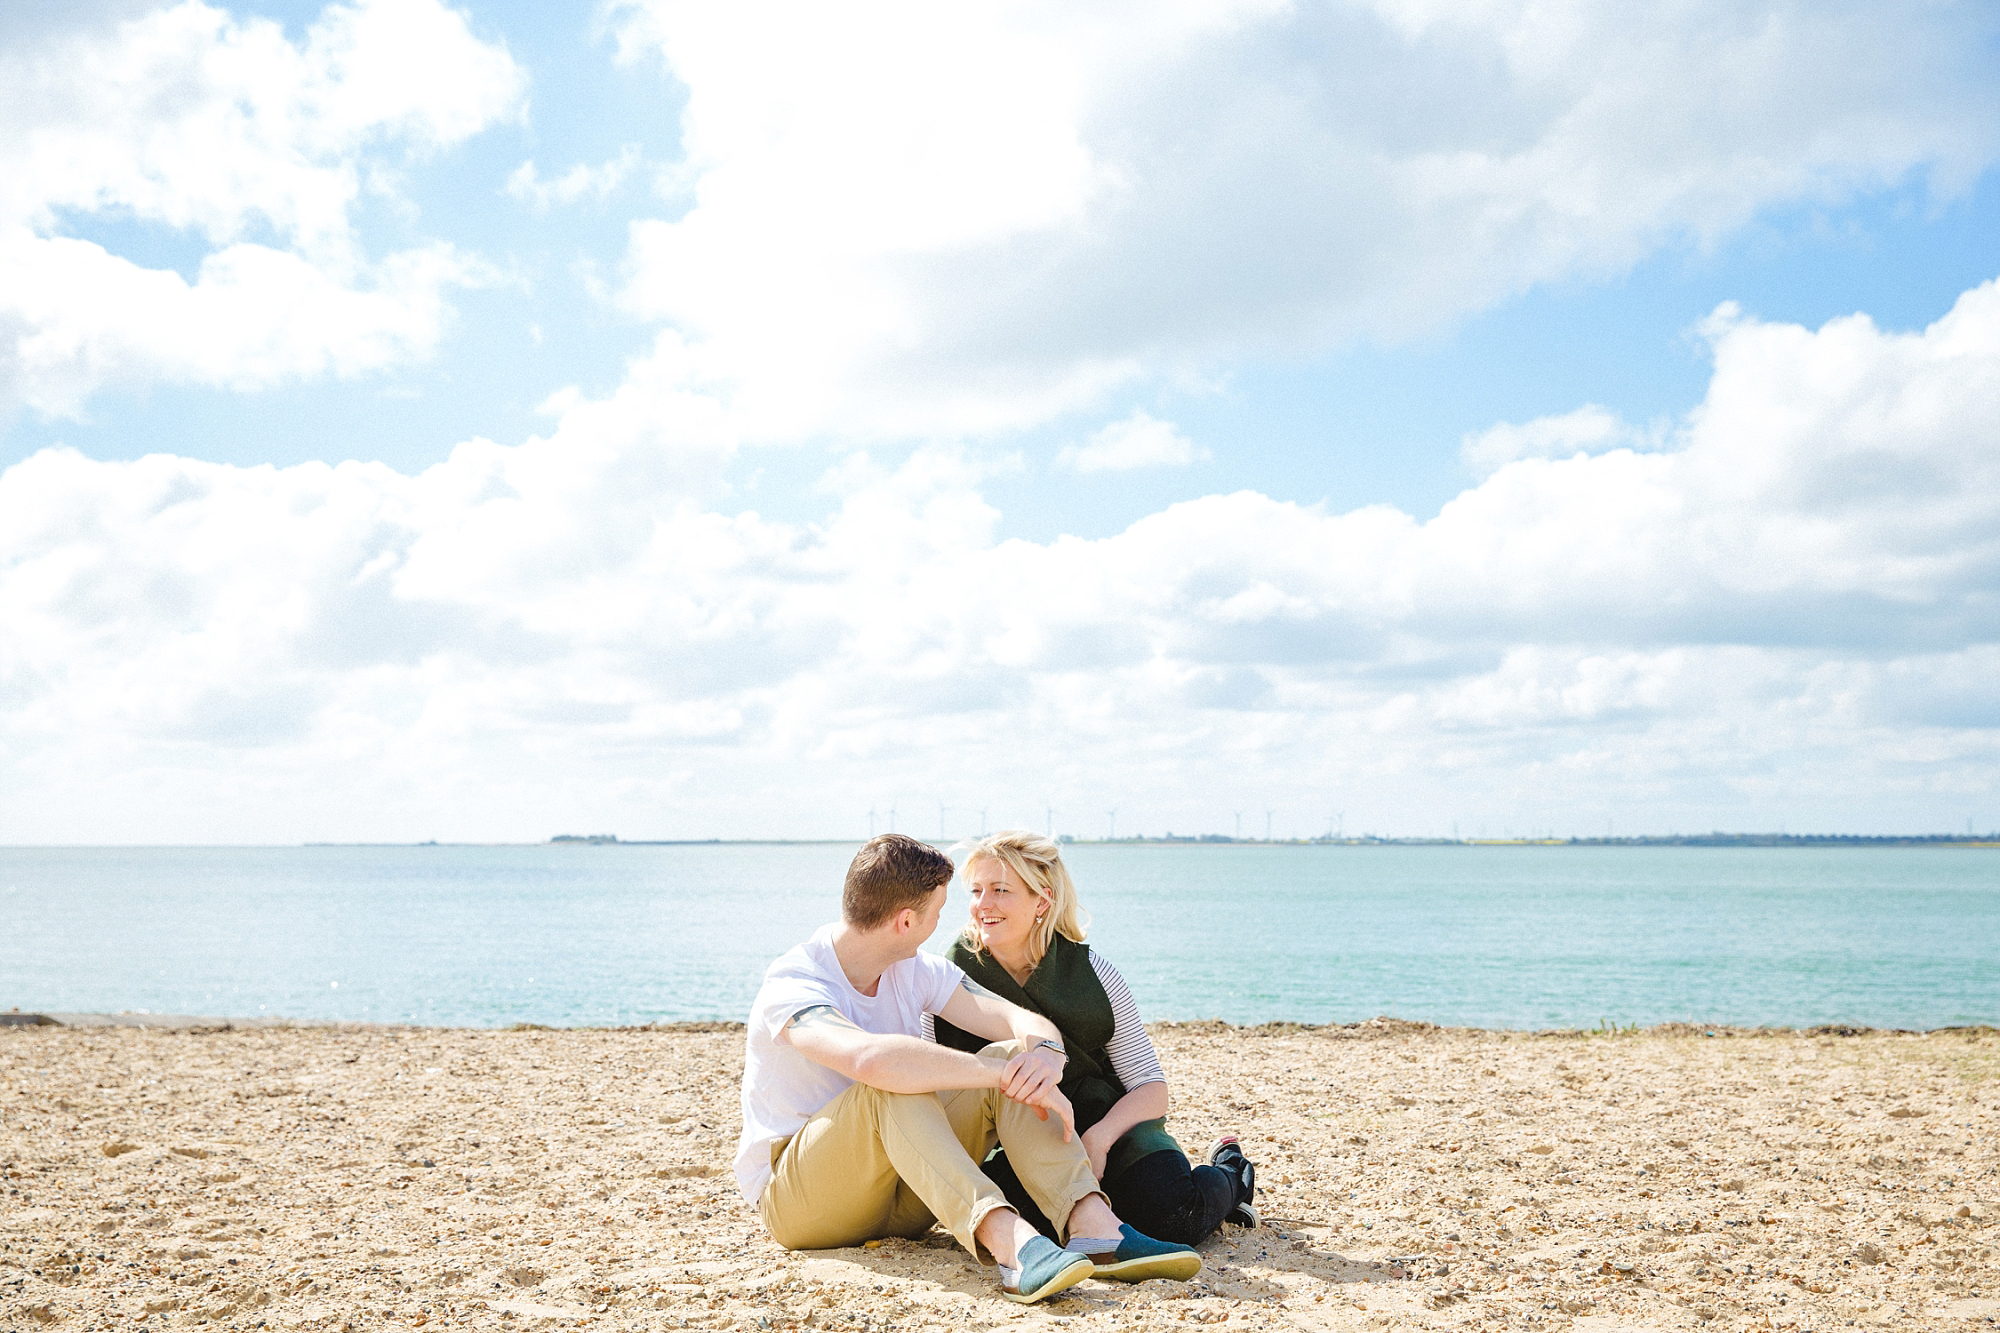 Mersea-Island-Beach-Engagement_0026.jpg